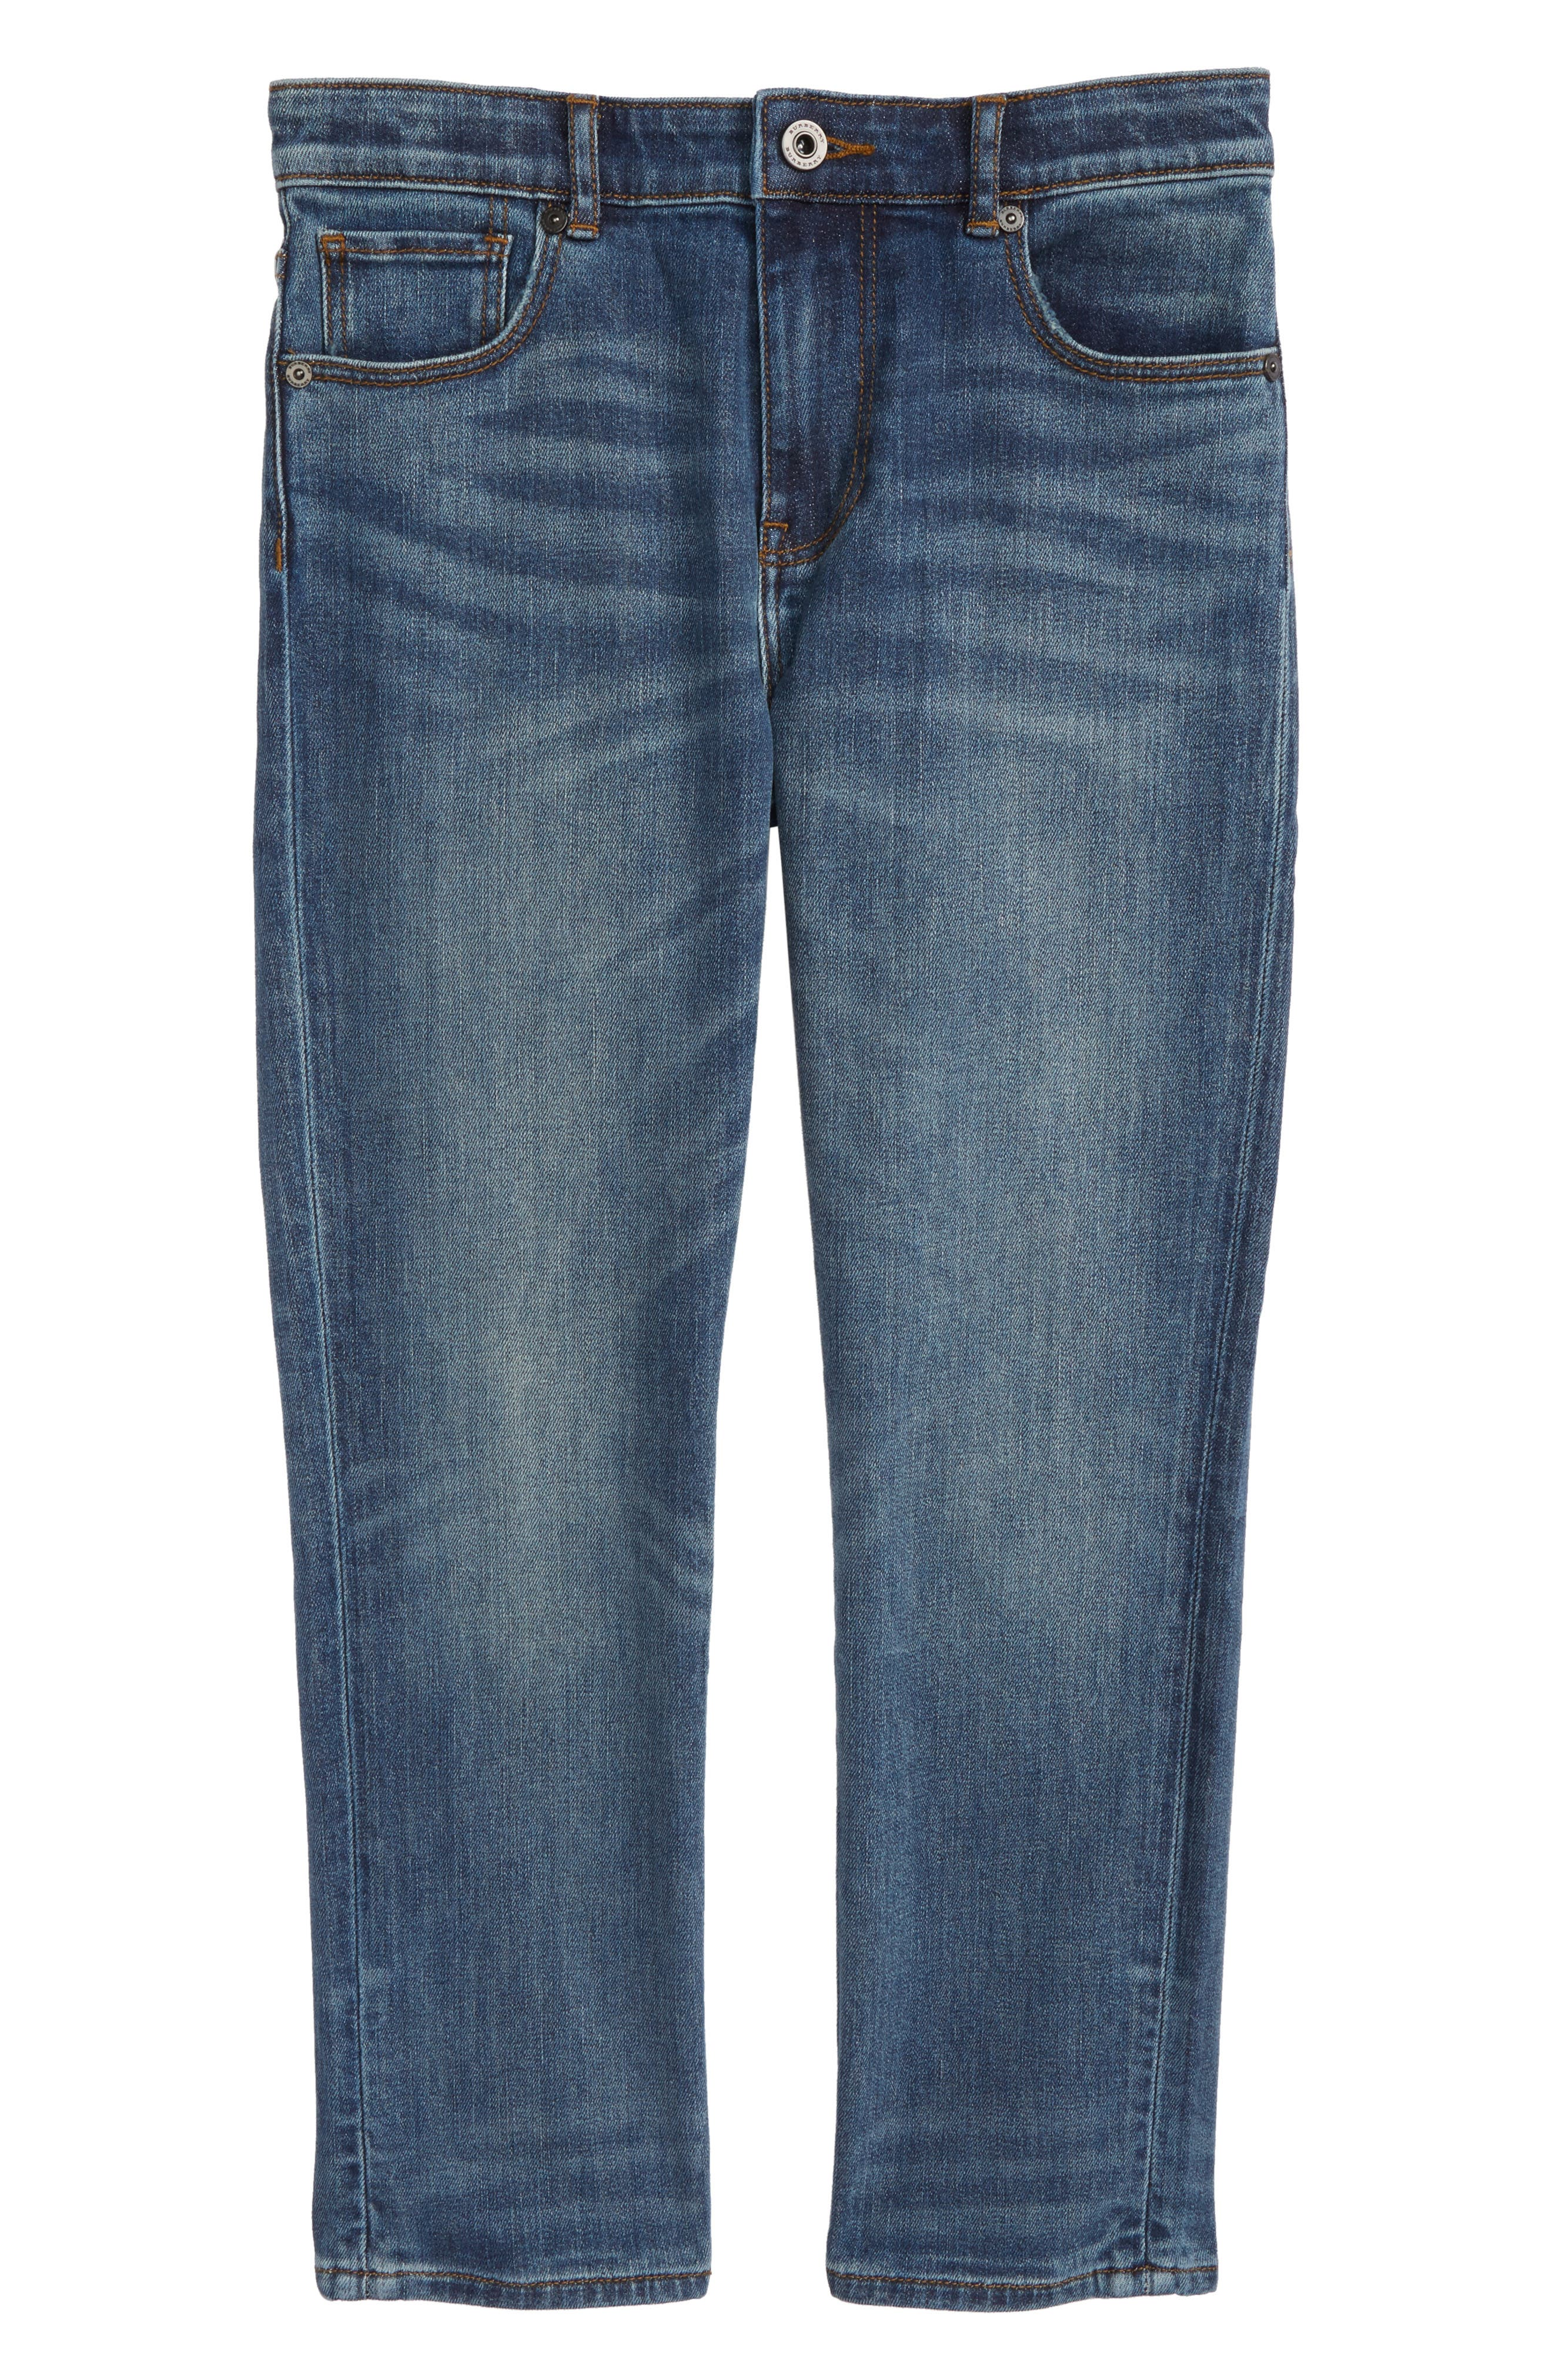 BURBERRY, Relaxed Fit Jeans, Main thumbnail 1, color, 412